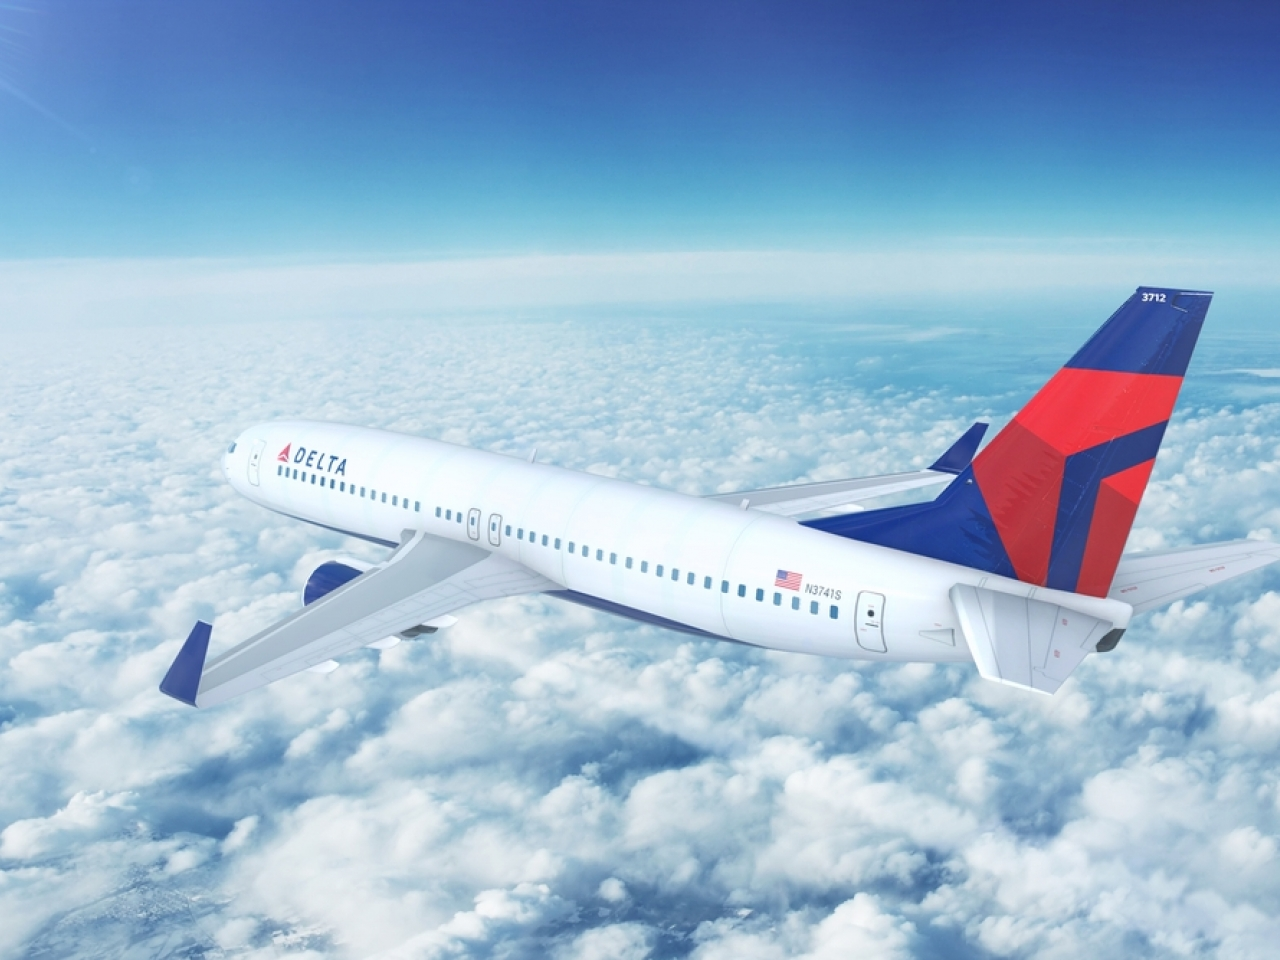 """Airline Delta is among the parties pushing for sharing of """"no-fly"""" lists. File image: Shutterstock"""